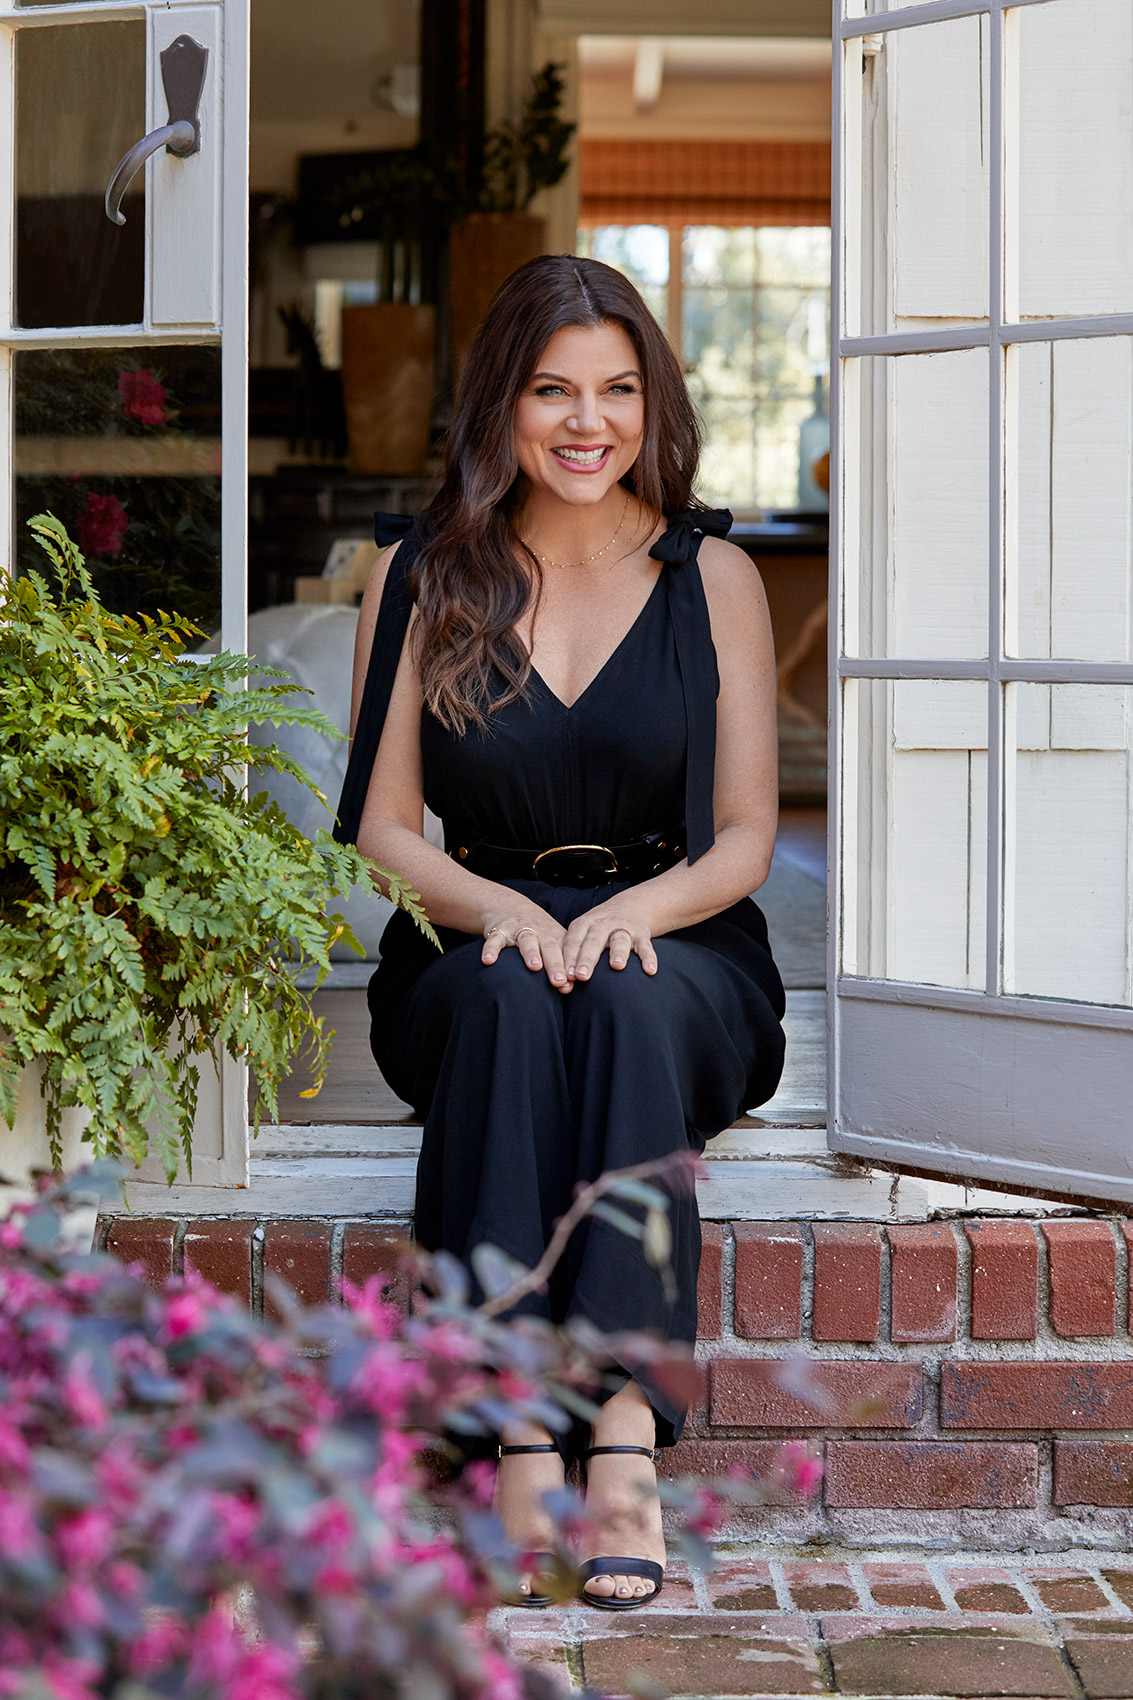 Kimberly_Genevieve_Tiffani_Thiessen_03